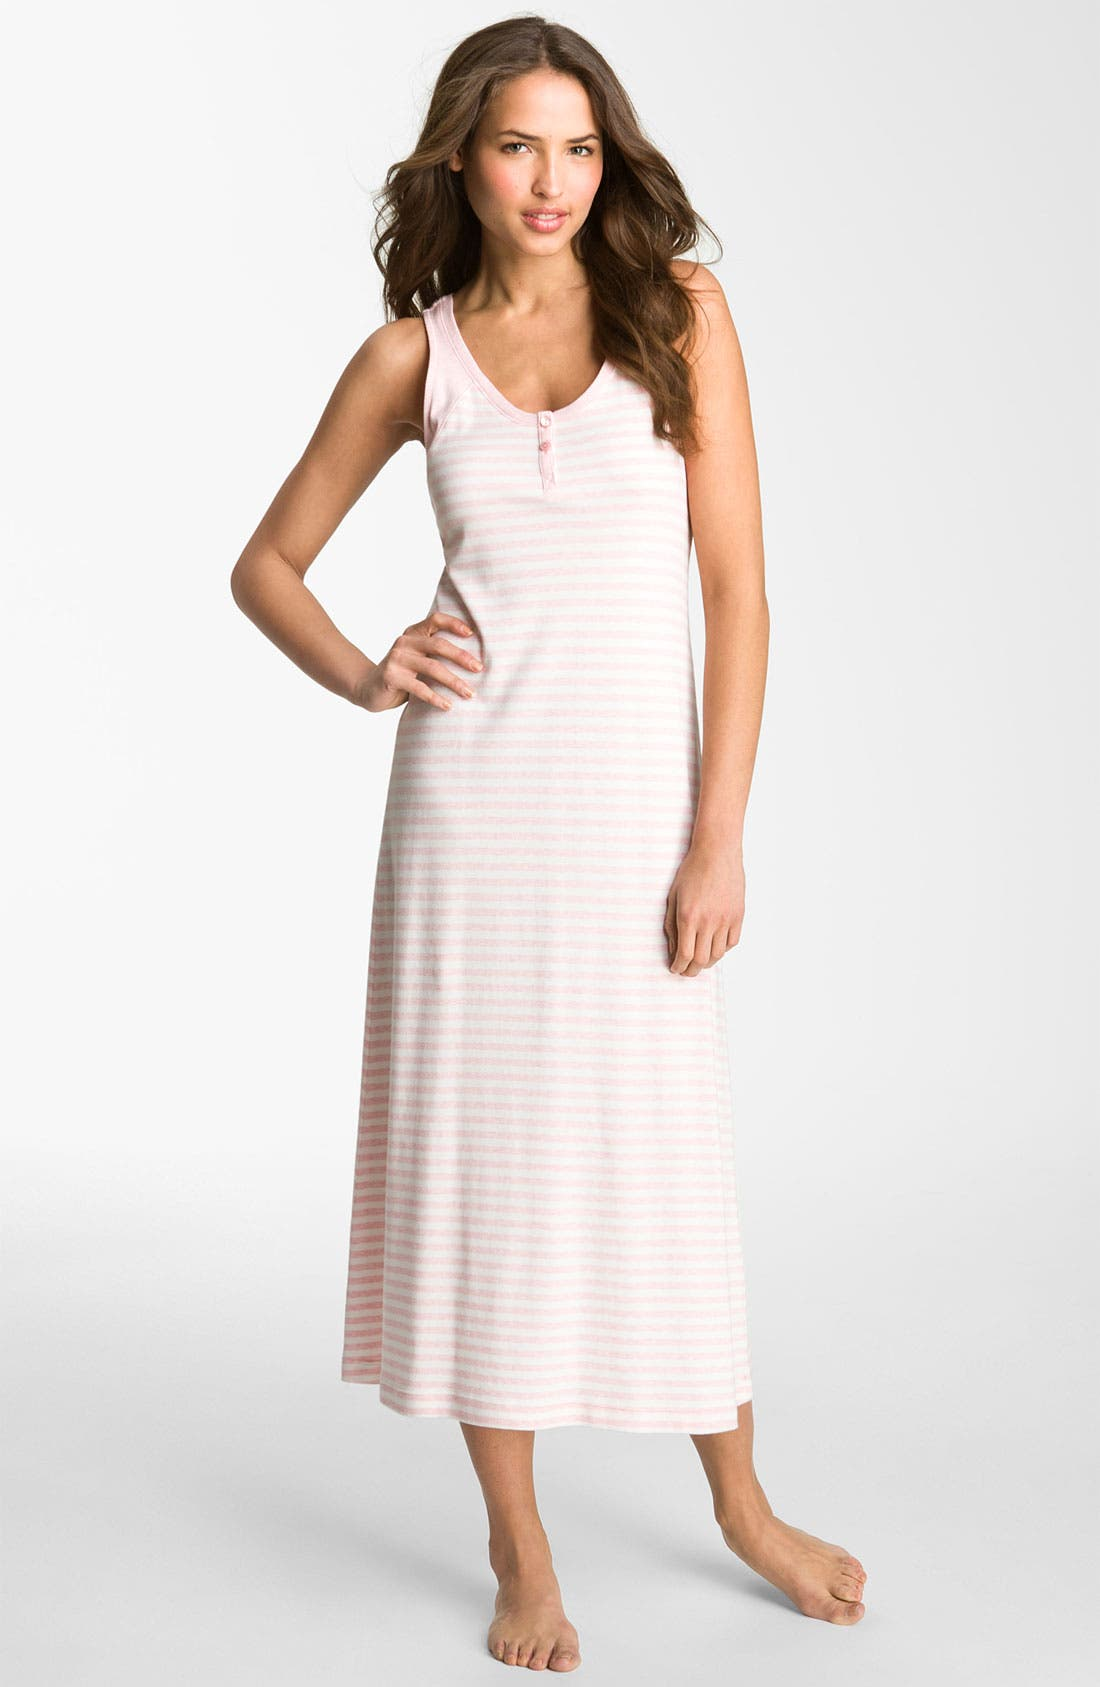 Alternate Image 1 Selected - Carole Hochman Designs 'Gardenside' Nightgown